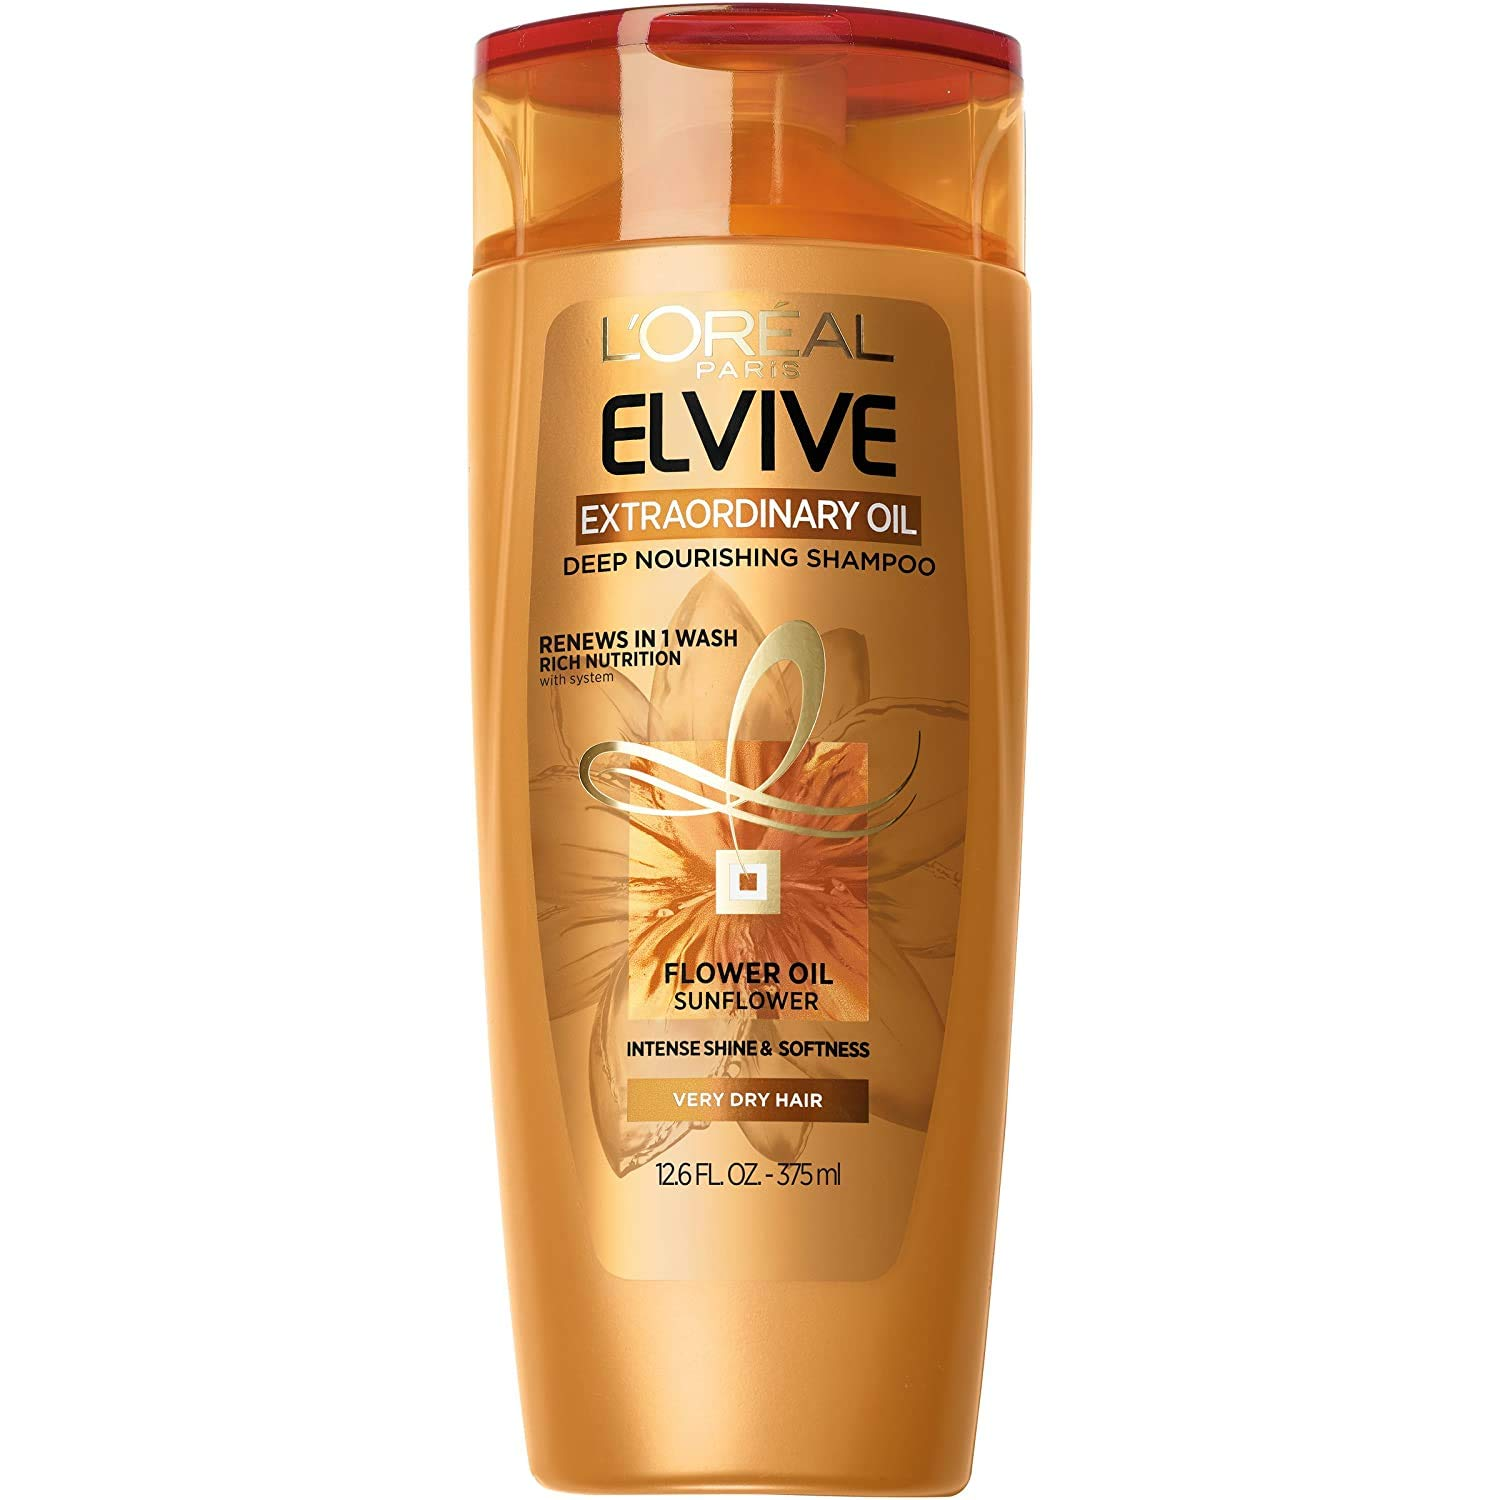 L'Oréal Paris Elvive Extraordinary Oil Deep Nourishing Shampoo, 12.6 fl. oz. (Packaging May Vary)